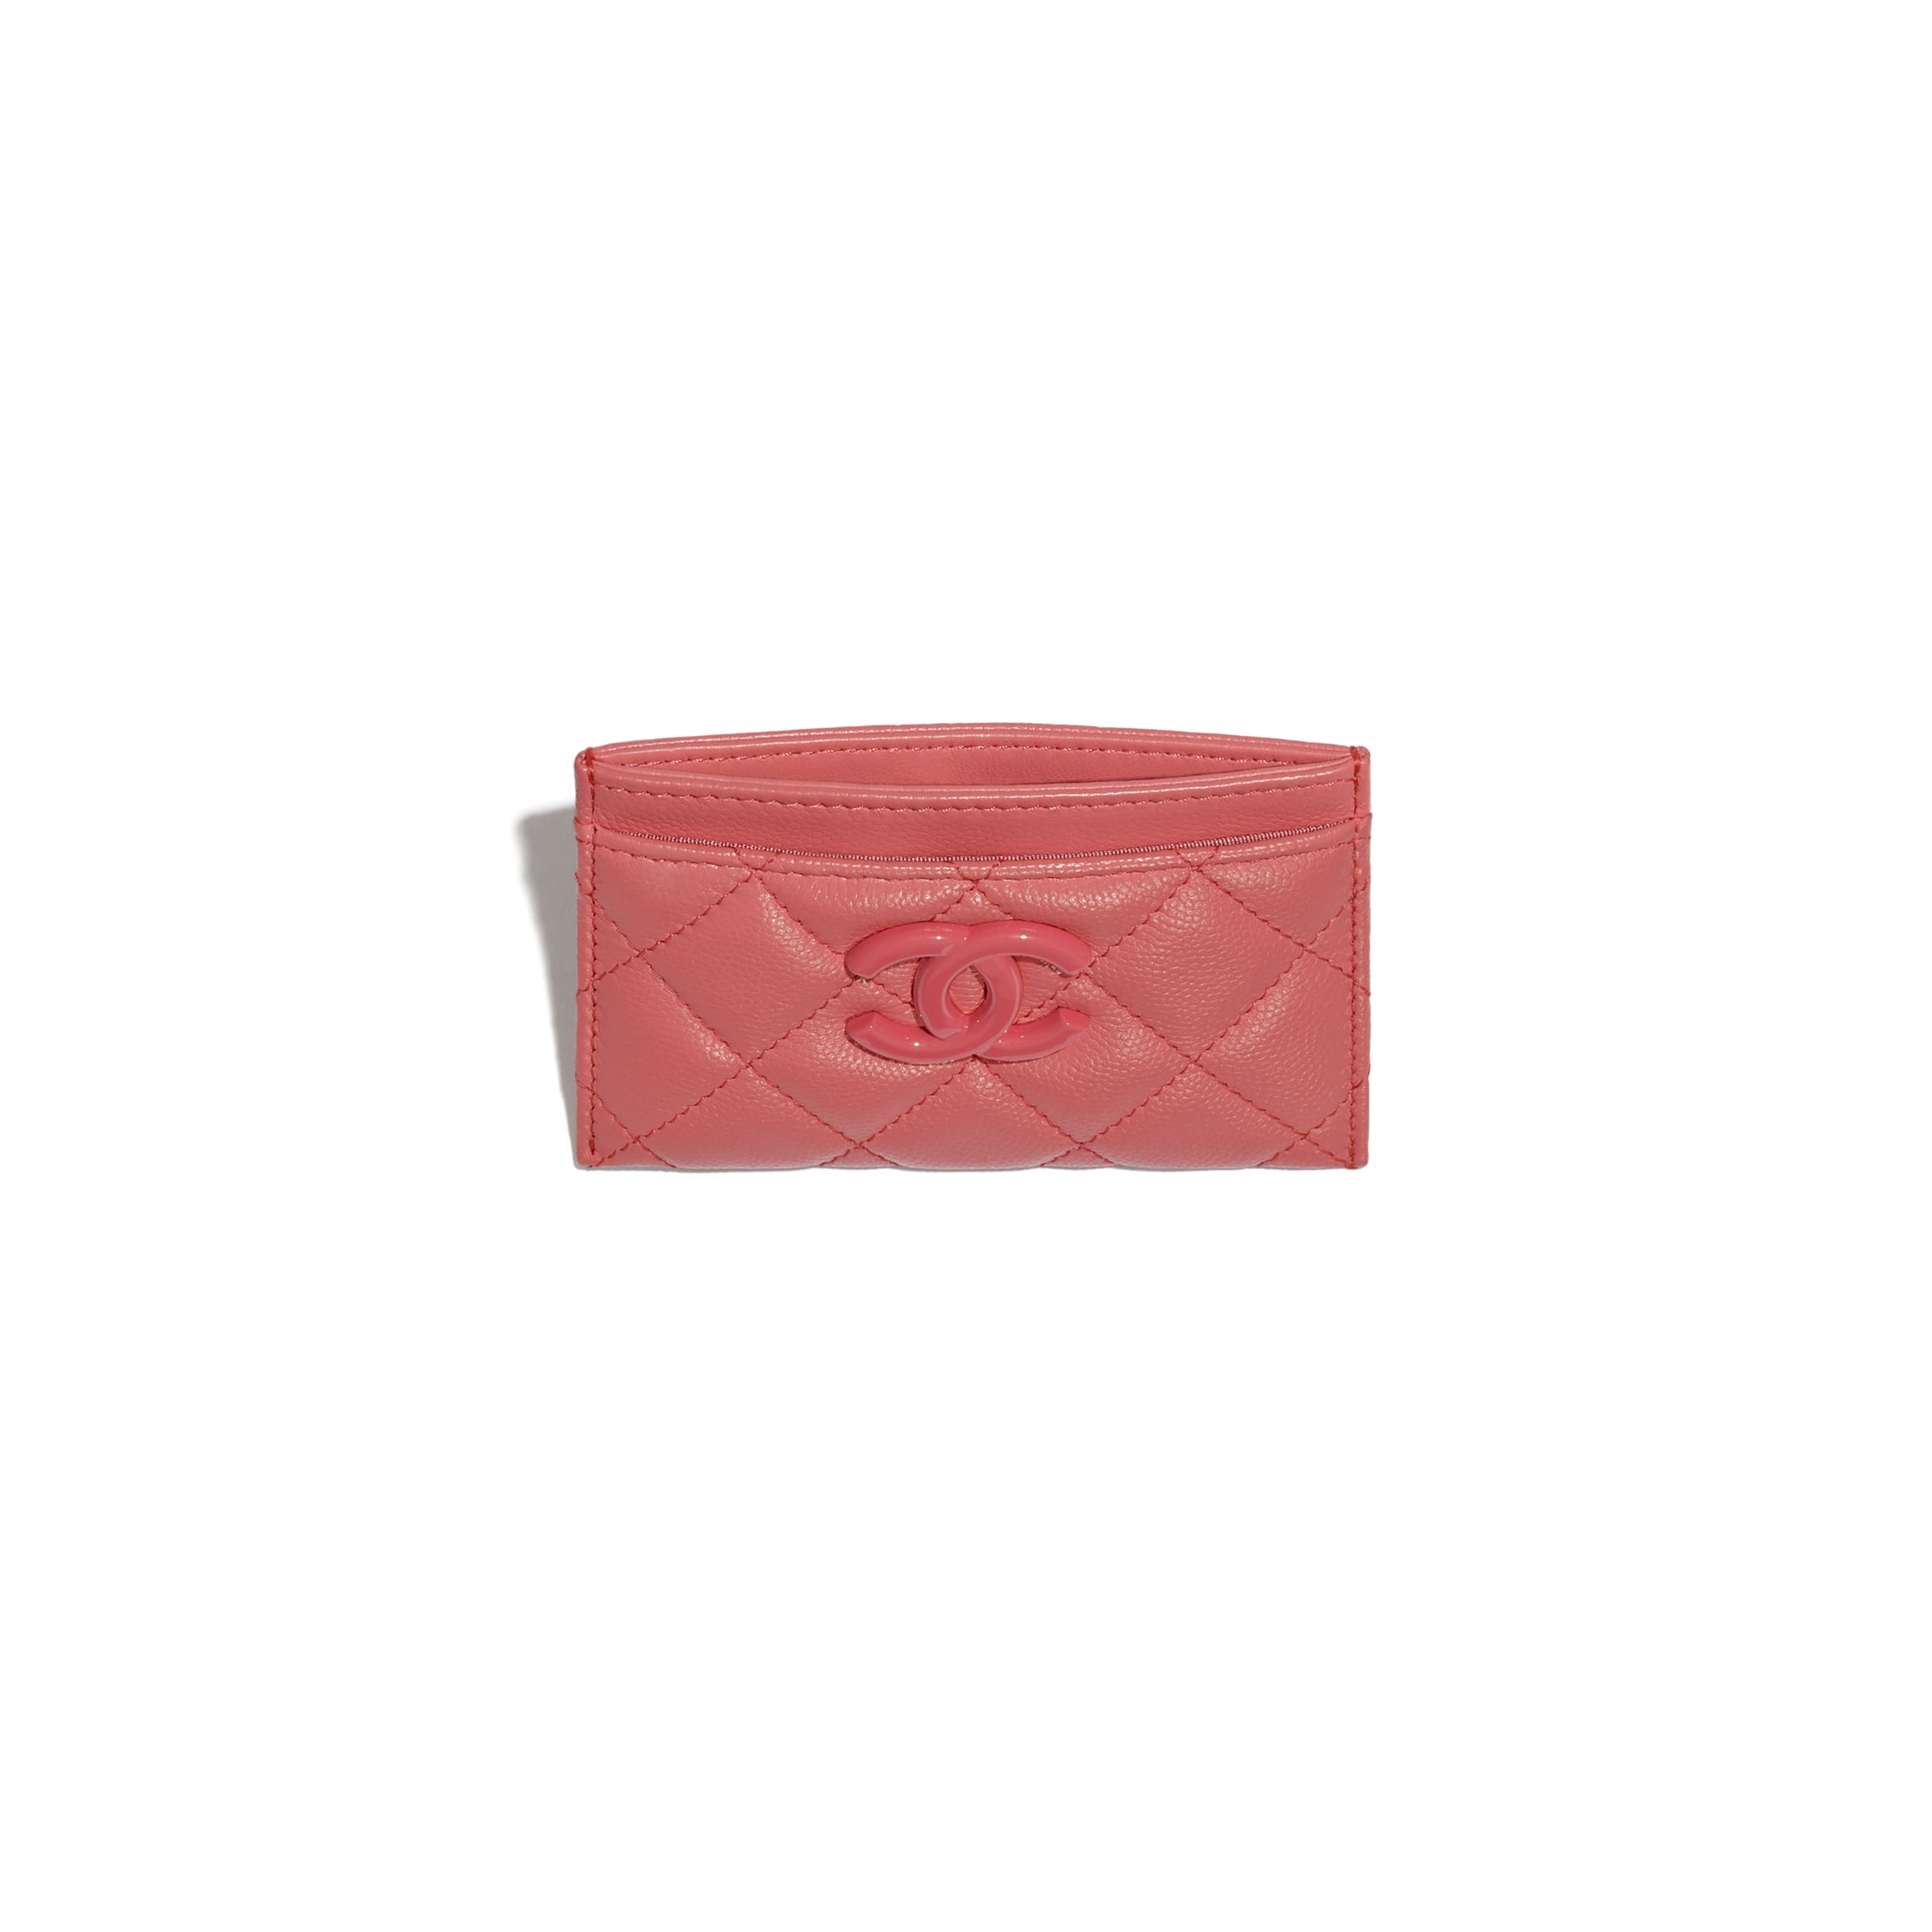 Card Holder - Coral - Grained Calfskin & Lacquered Metal - CHANEL - Alternative view - see standard sized version